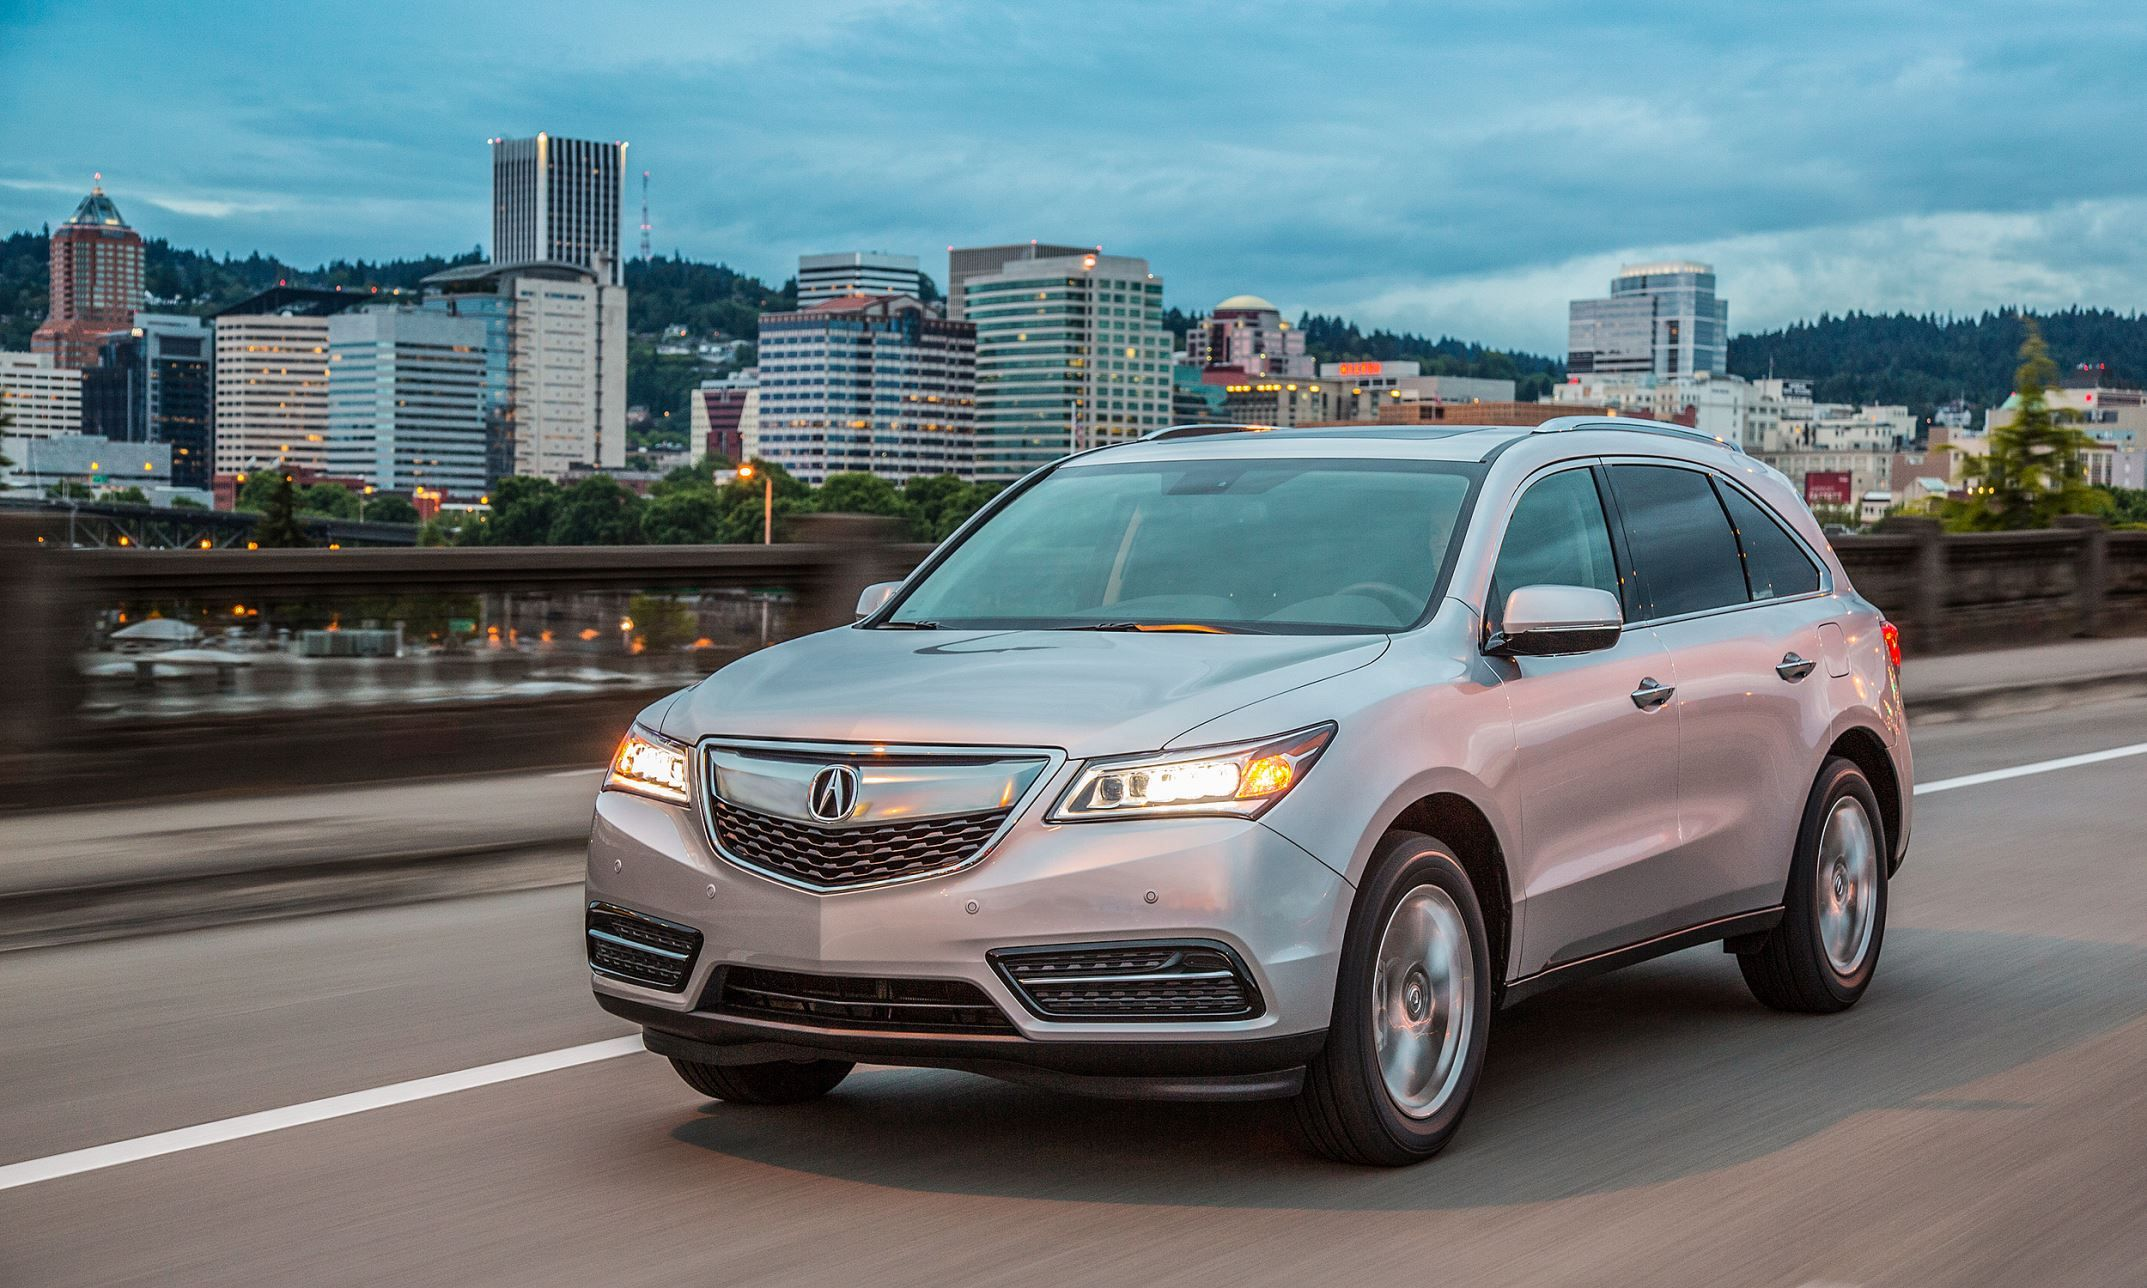 10 best cars made in the USA Acura mdx, Acura cars